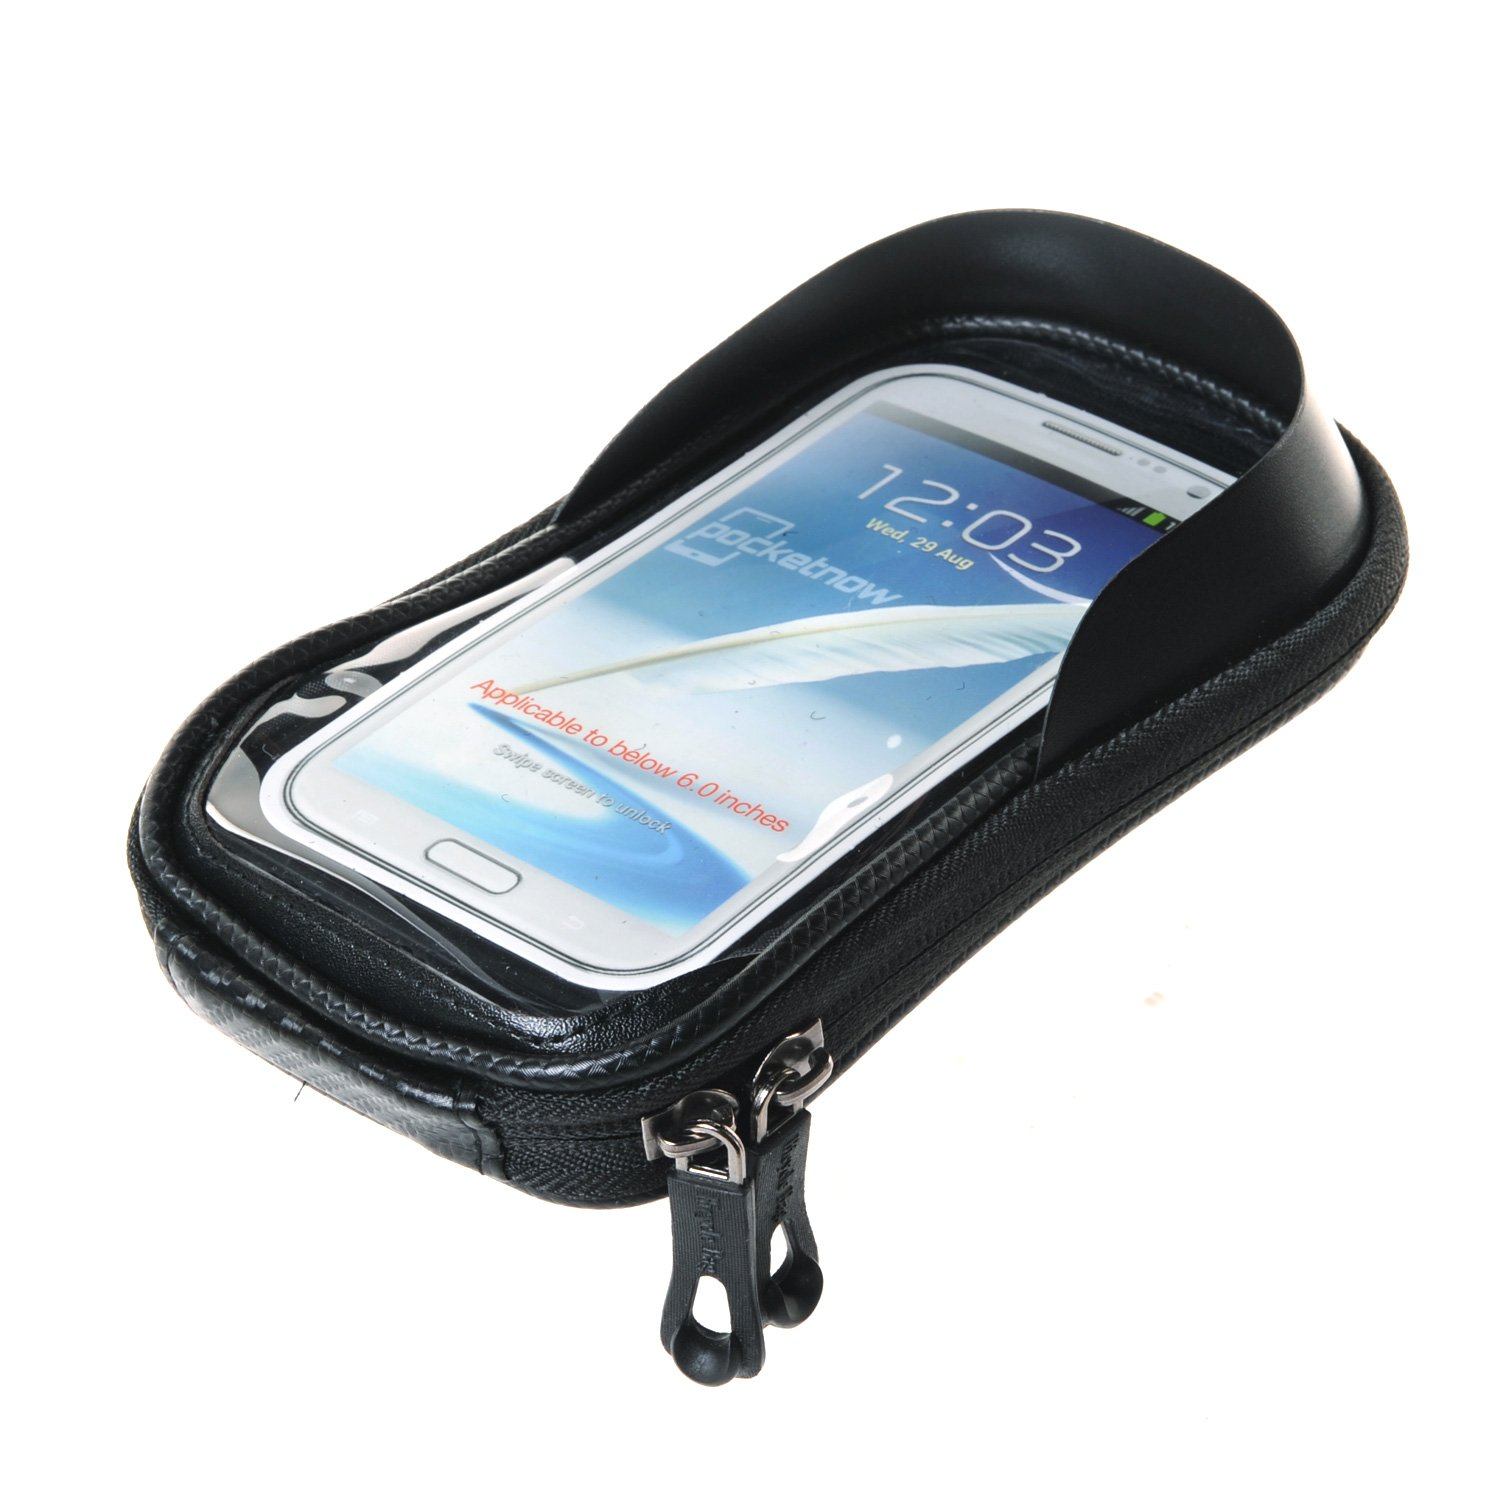 waterproof mobile phone holder